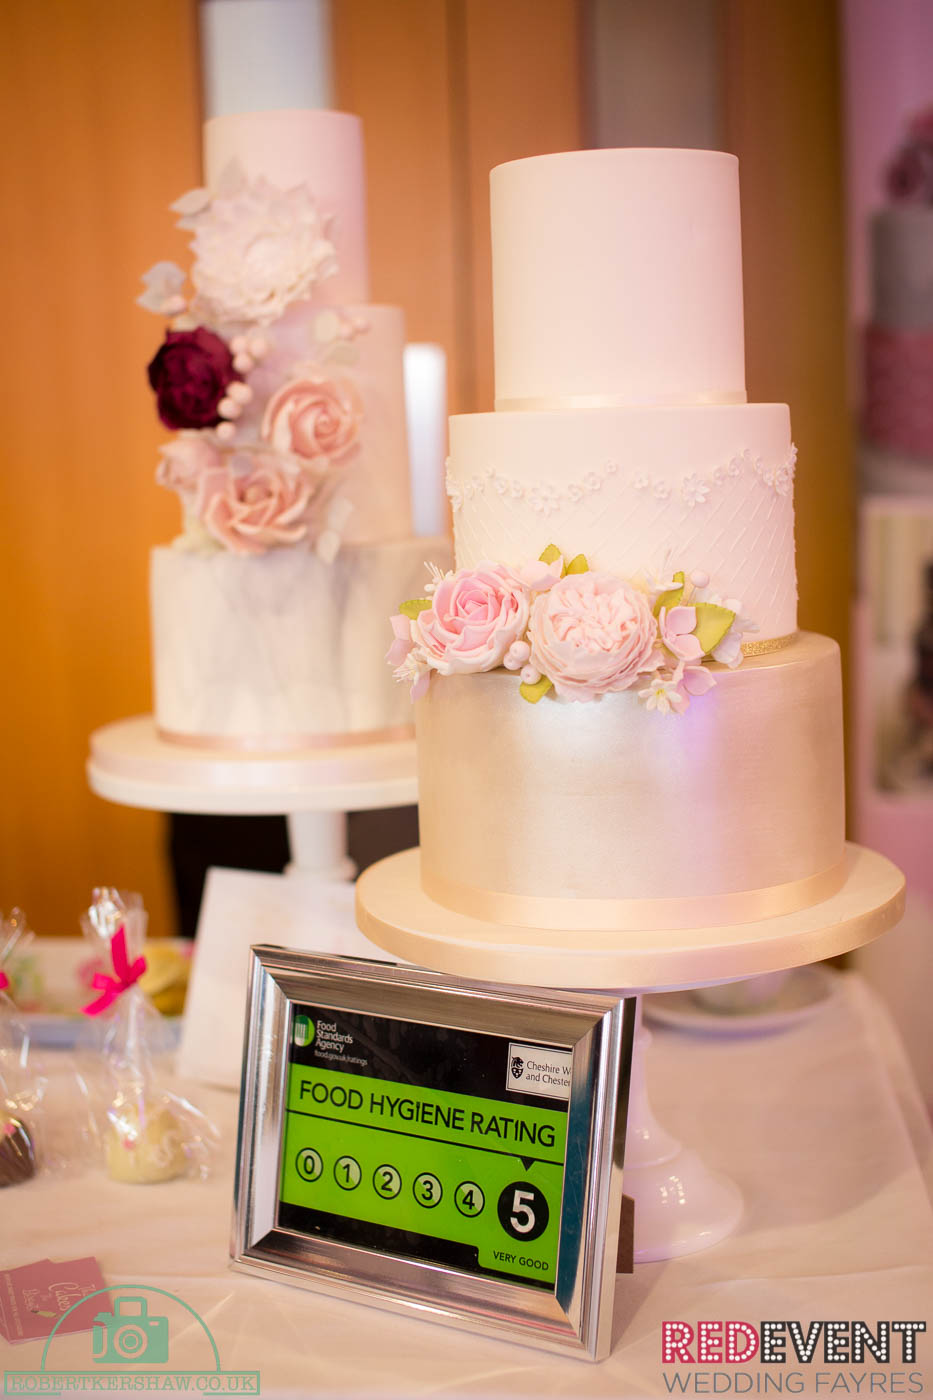 That Cakes the Biscuit special offer for Formby Hall Wedding Fayre Liverpool Wedding Fair Merseyside Weddings www.redeventweddingfayres.com2.jpg